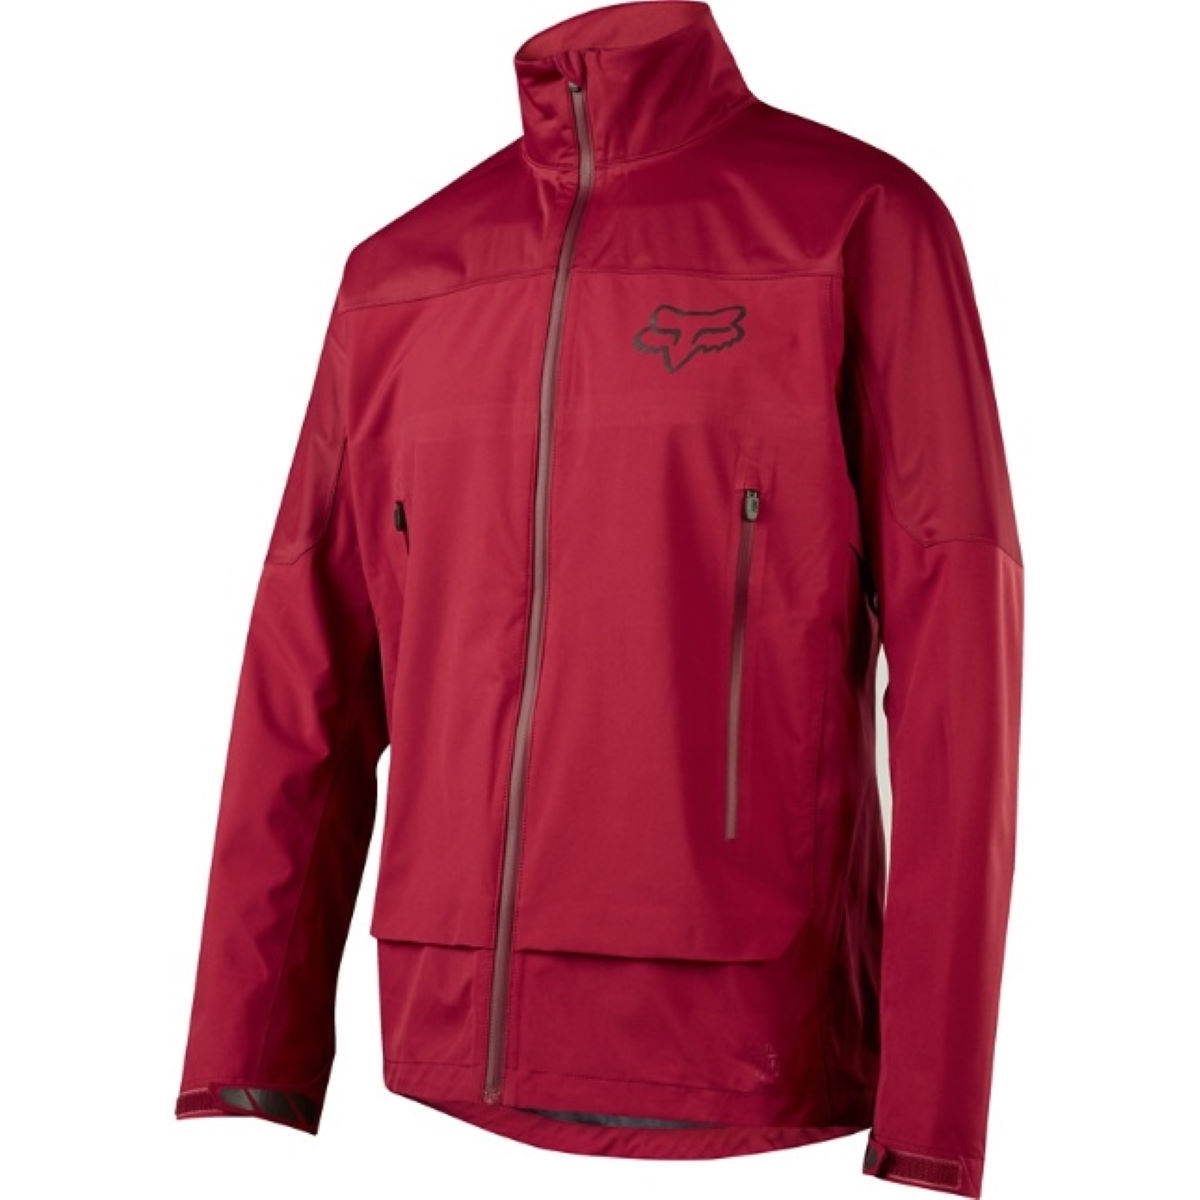 Veste Fox Racing Attack Water - S Dark Red Vestes imperméables vélo